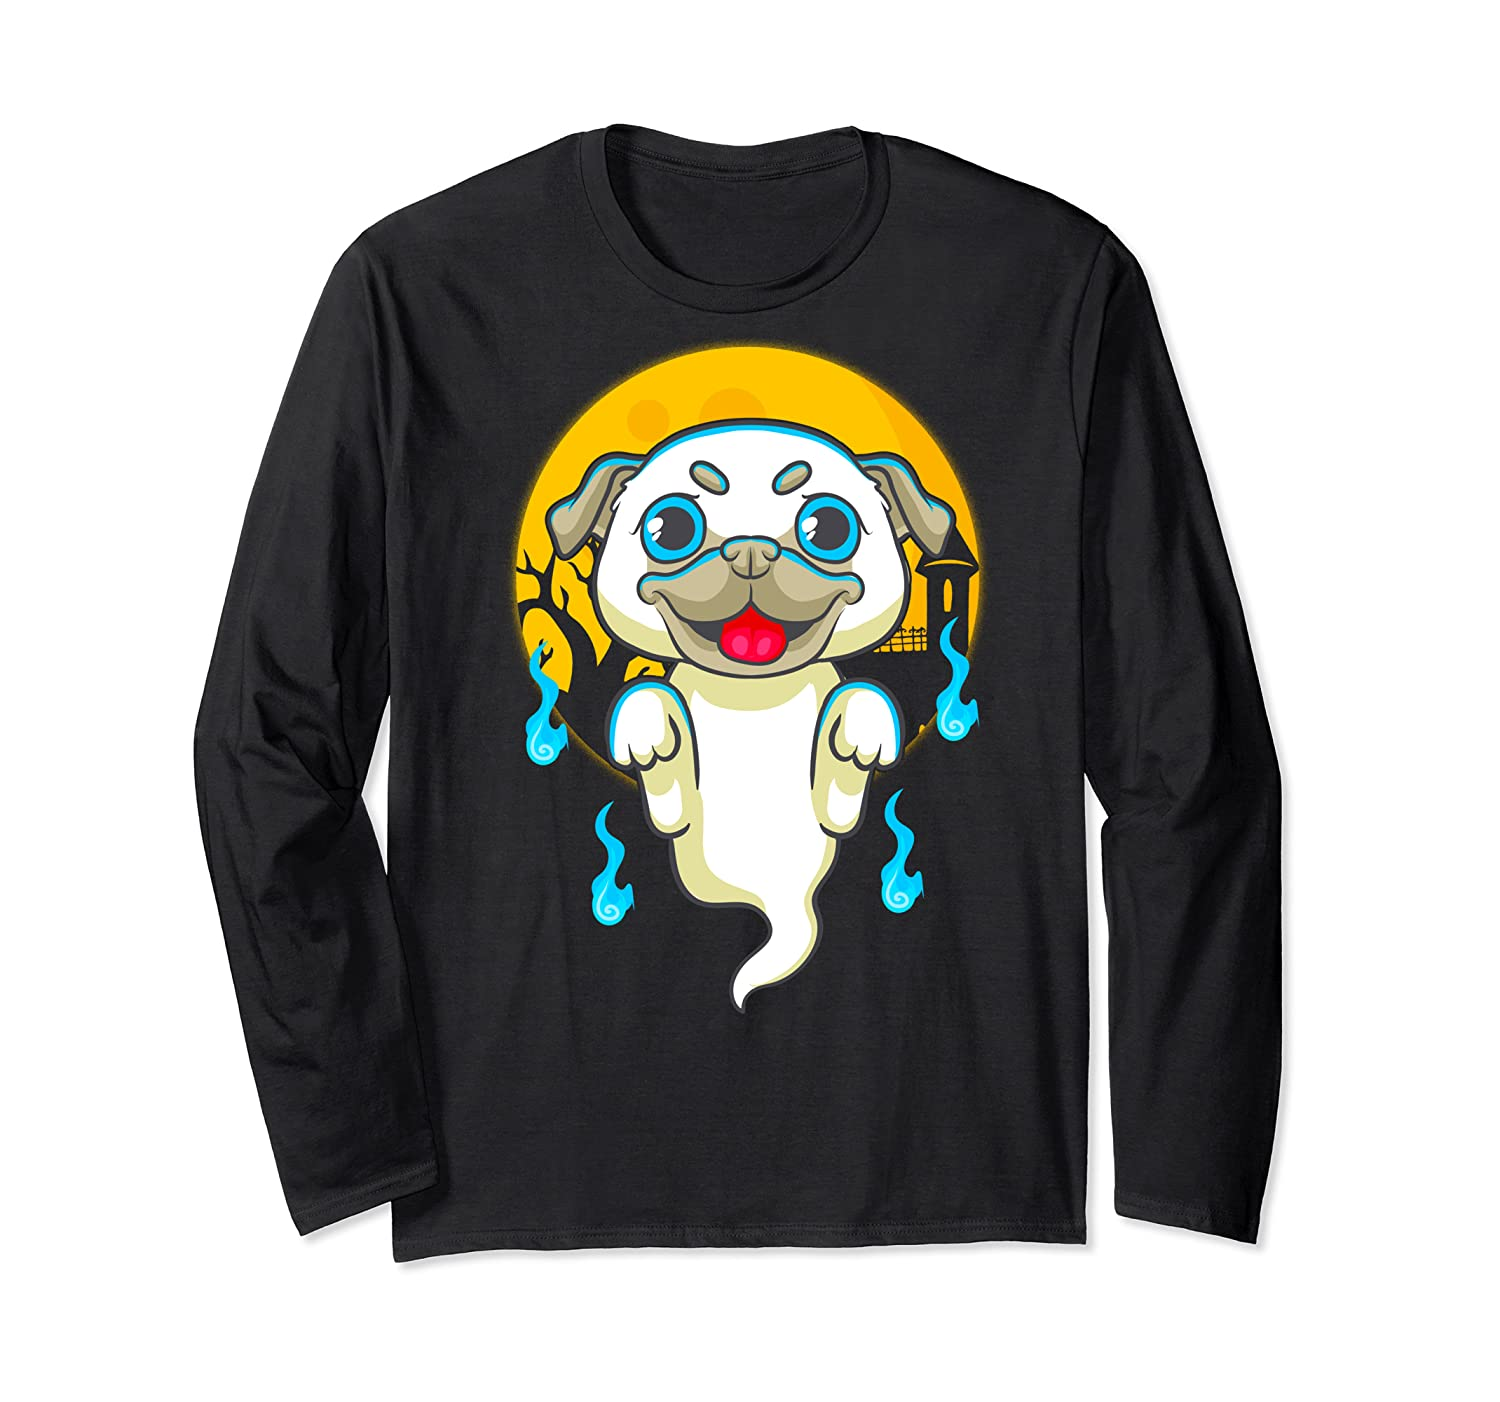 Cute Pug Dog Lover Ghost Funny Halloween Costume Gifts Shirts Long Sleeve T-shirt